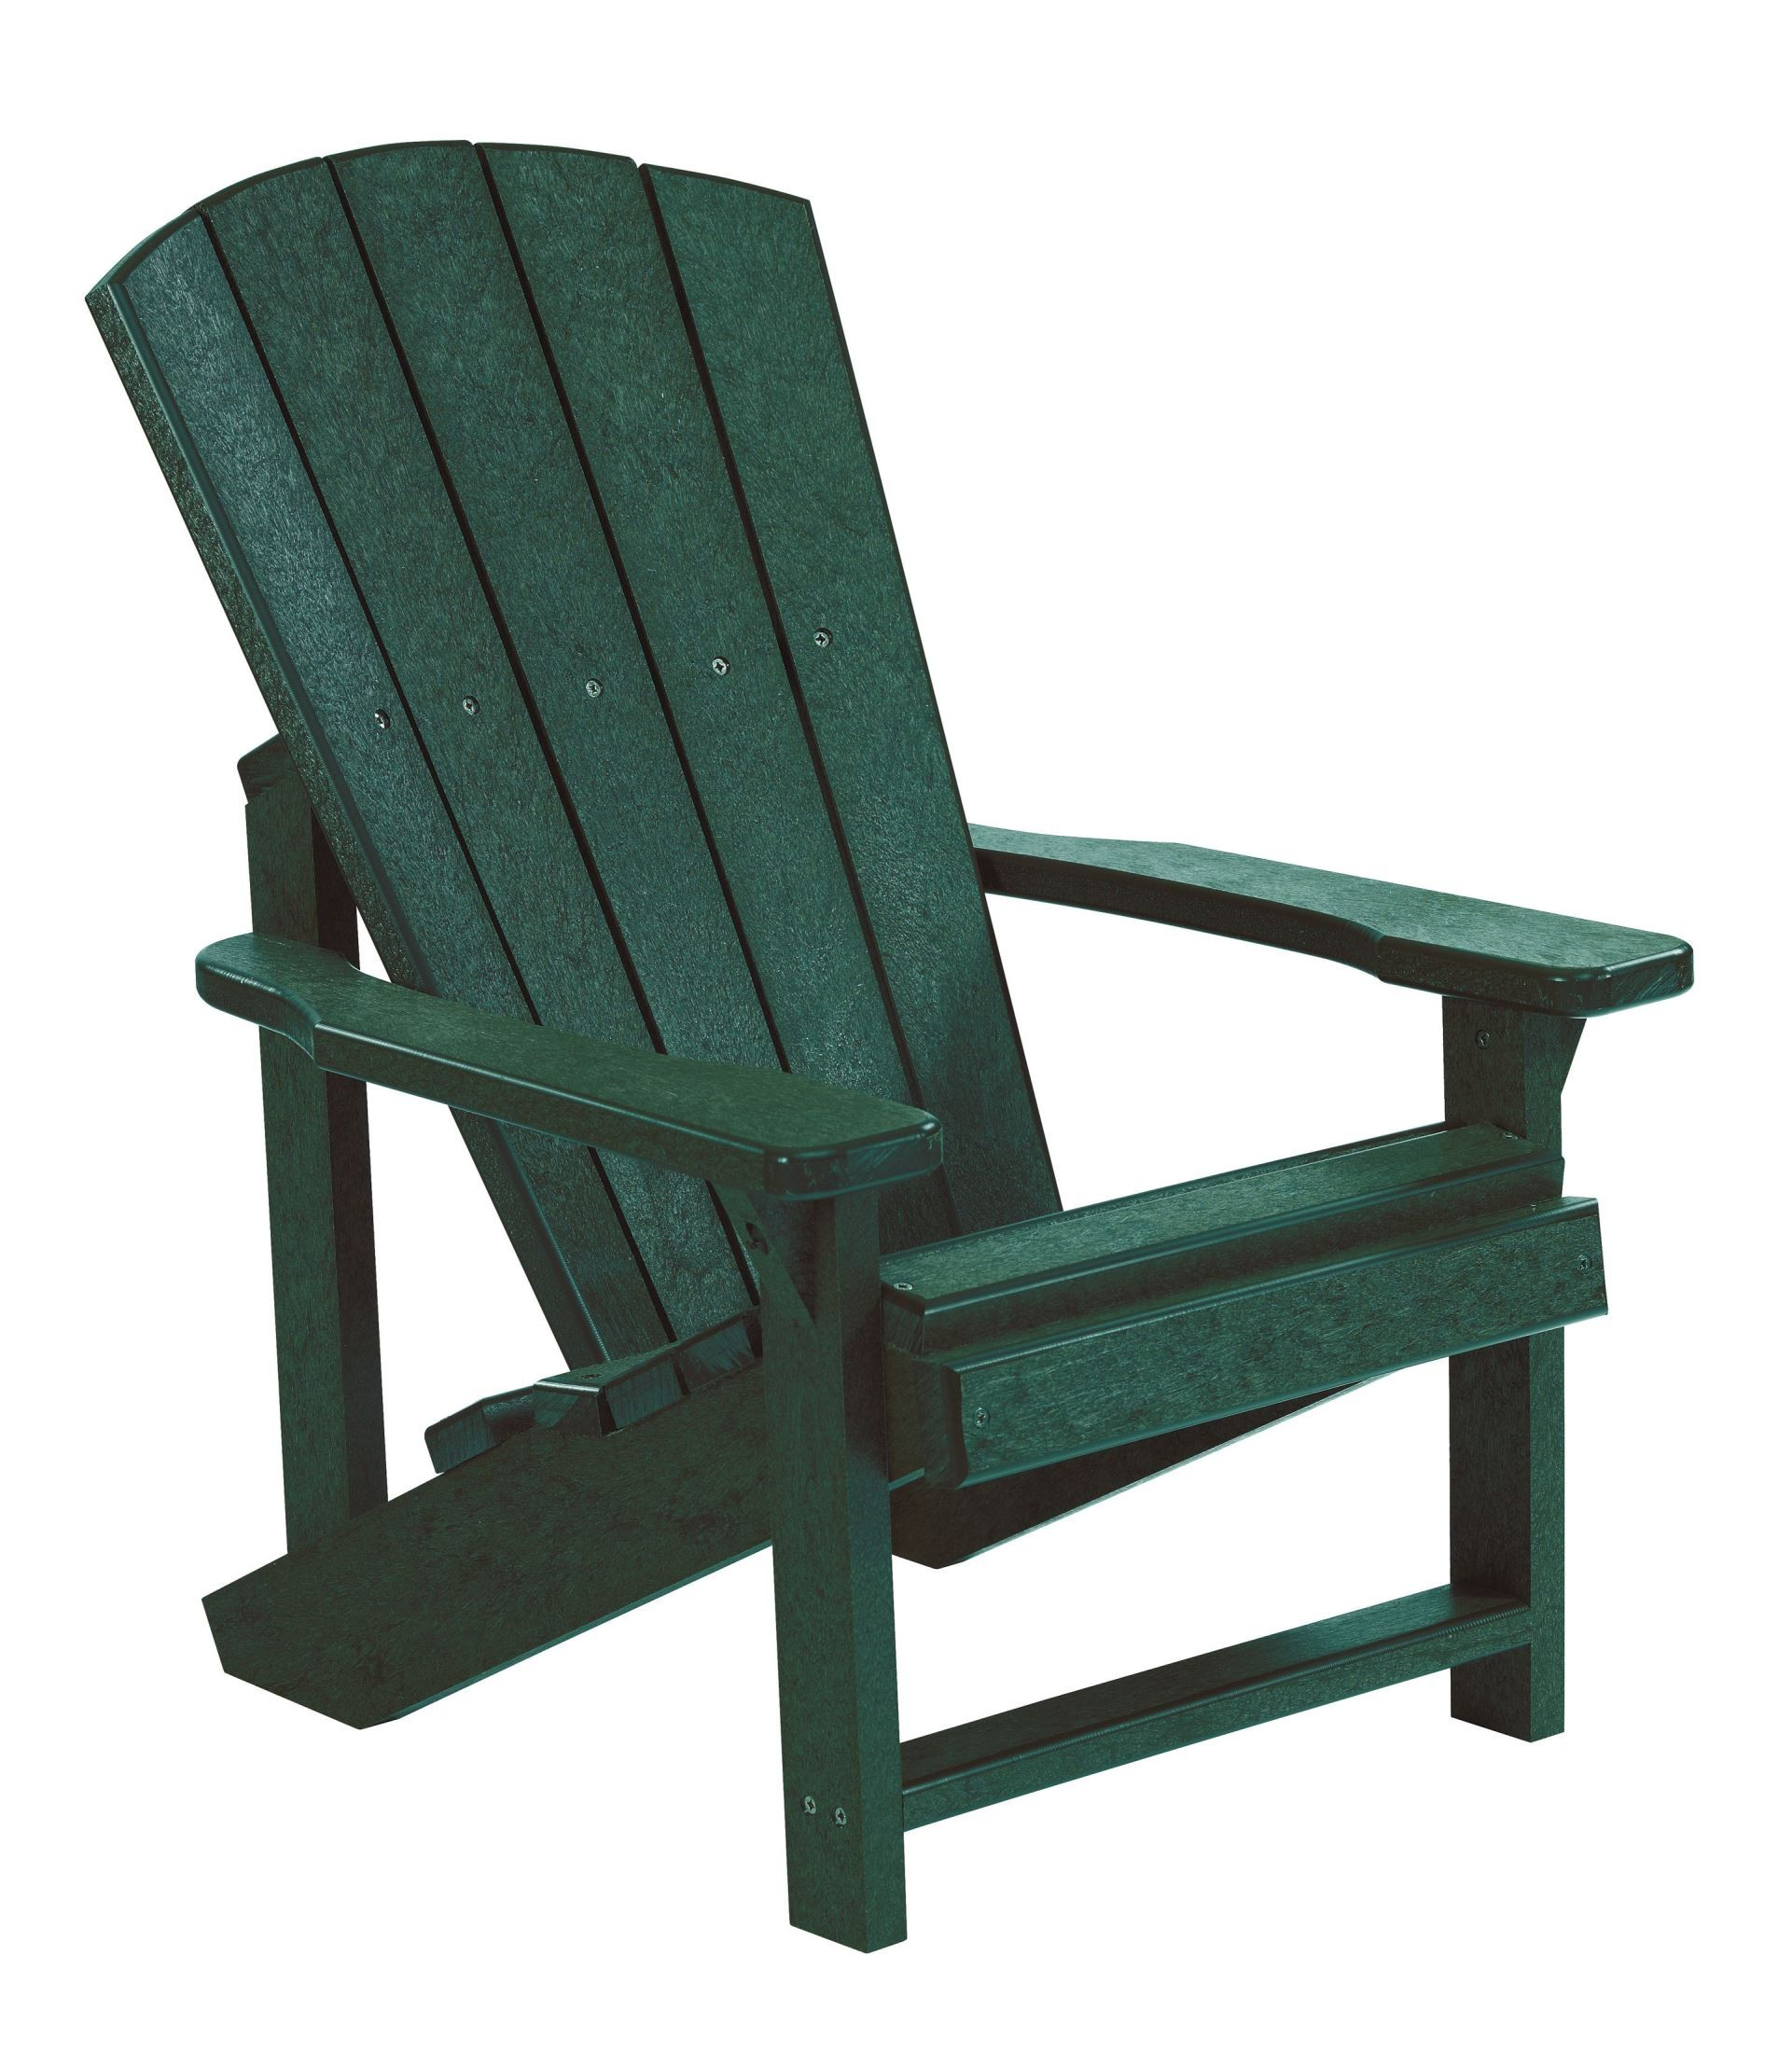 Kid Adirondack Chair Generations Green Kids Adirondack Chair From Cr Plastic